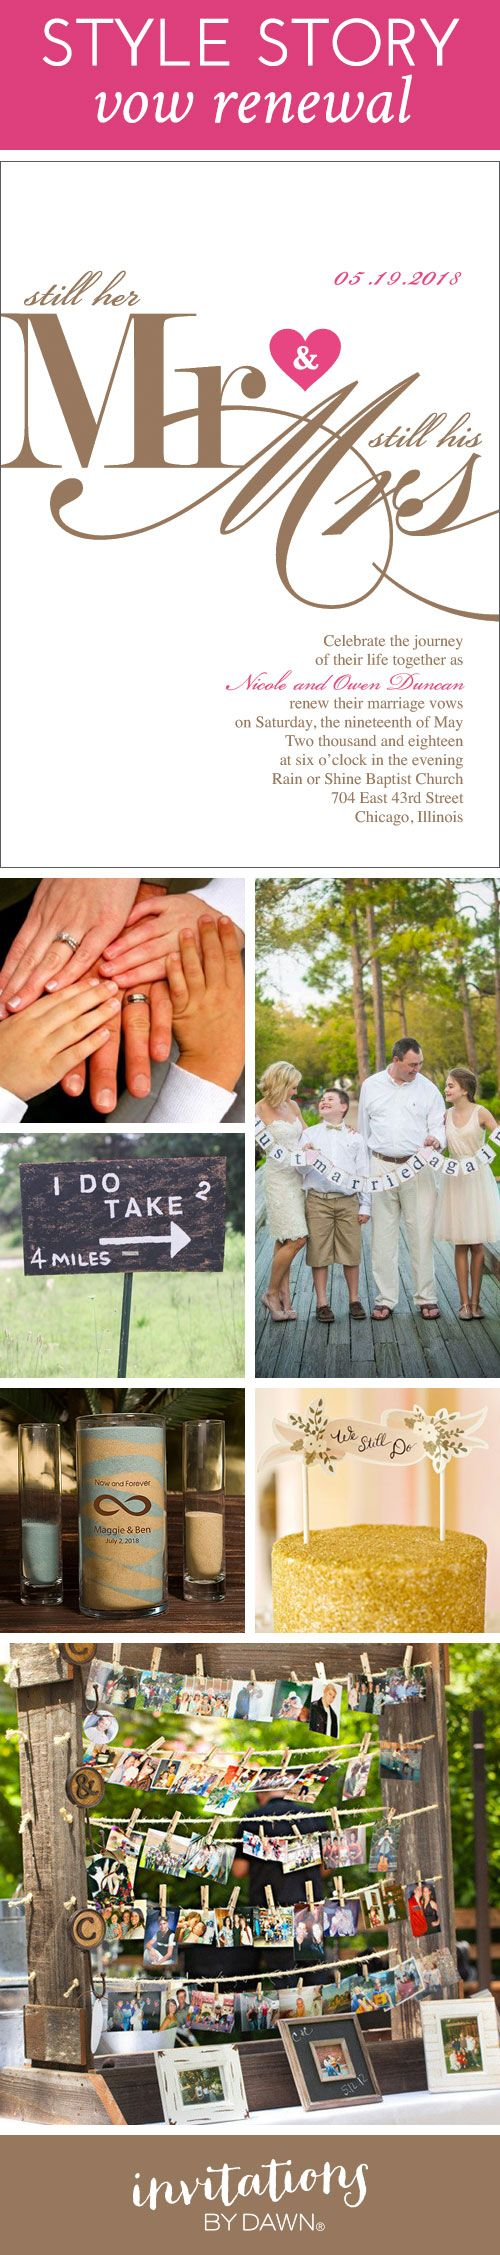 39 Best Renew Vows Images On Pinterest Weddings Renew Wedding